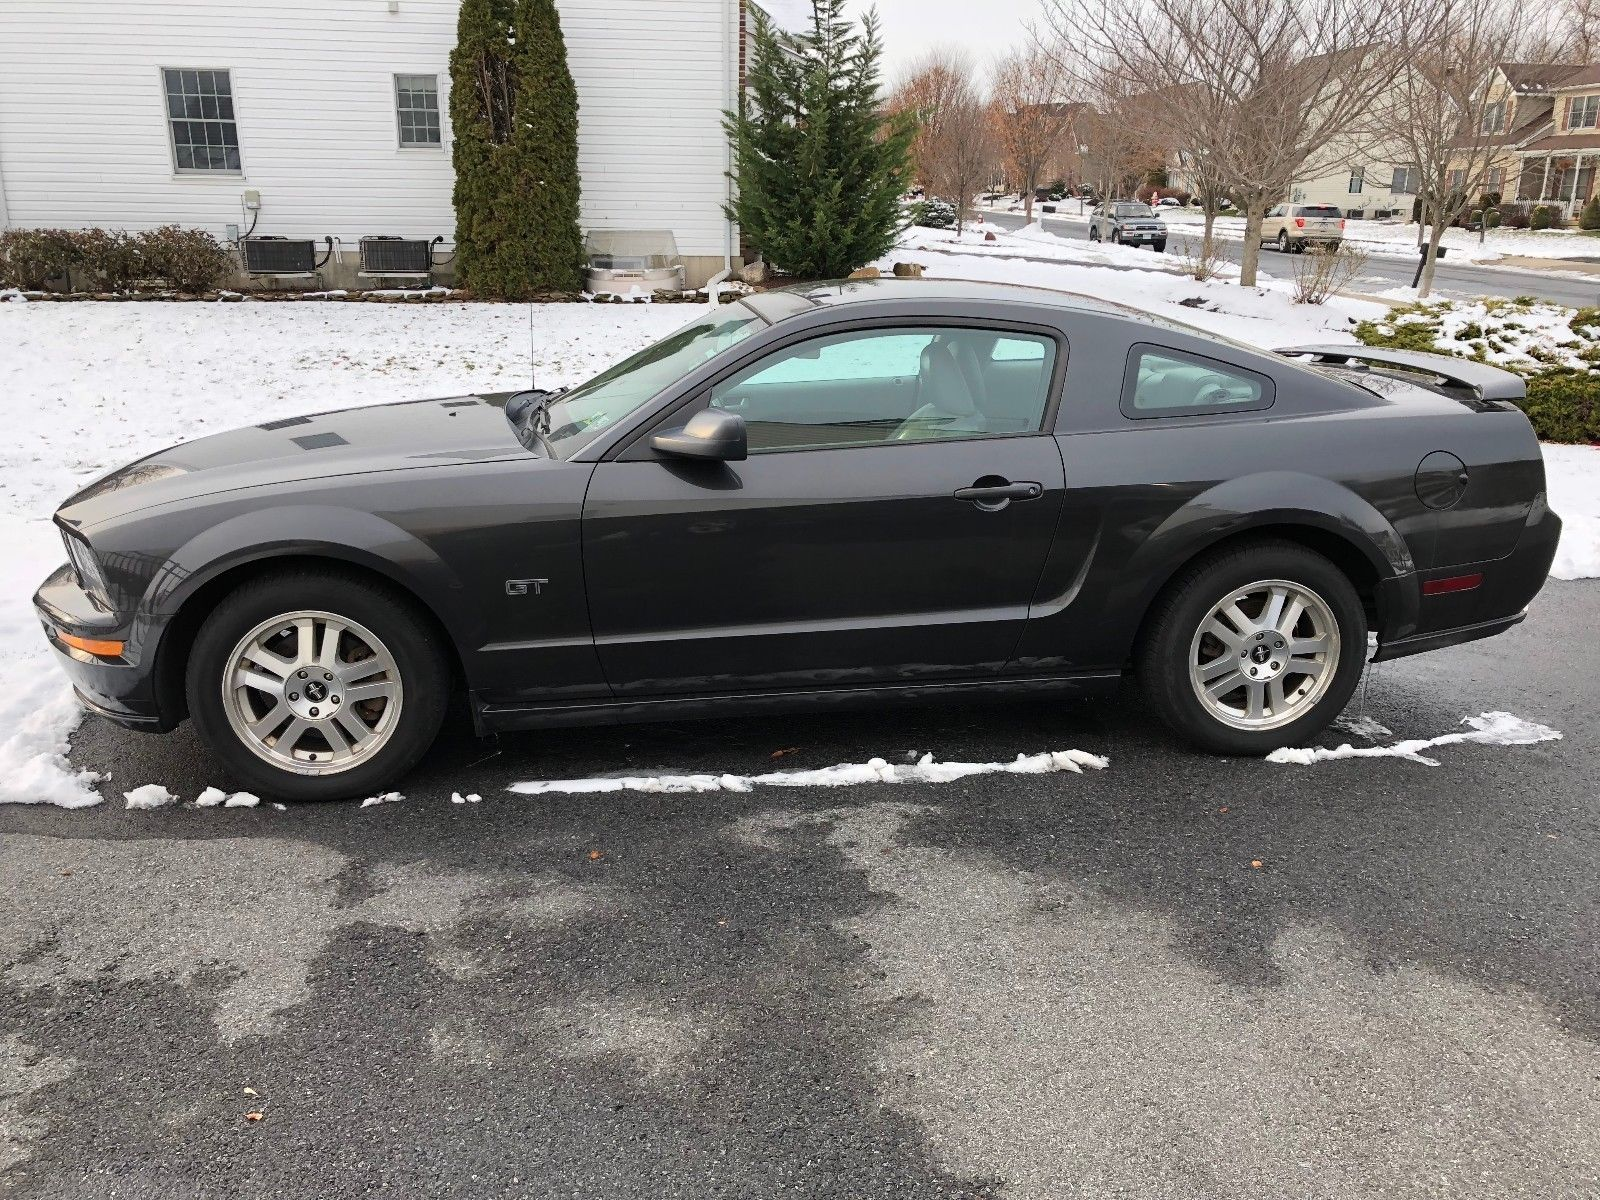 2007 Ford Mustang GT Deluxe | US Ford Mustang | Pinterest | Ford ...